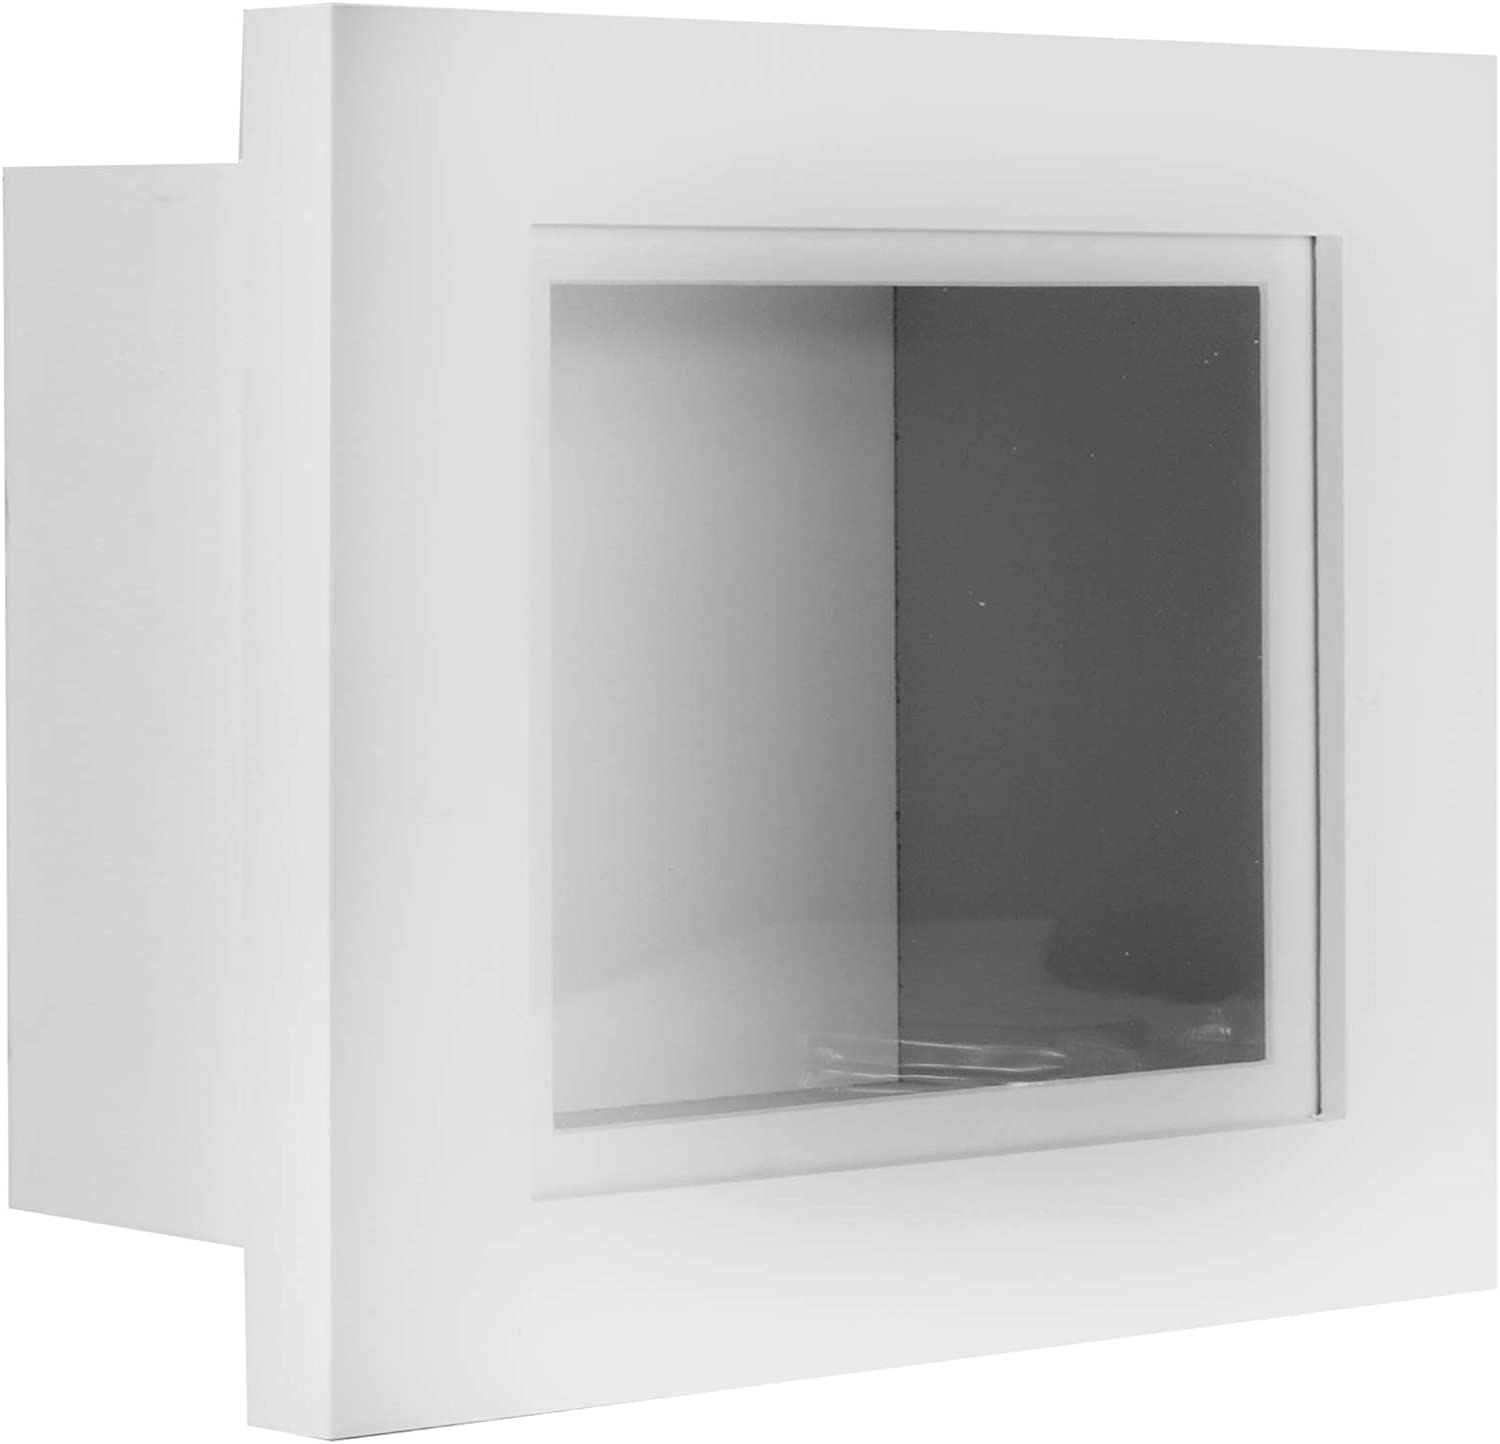 55mm 10x8 BRUSHED SILVER DEEP 3D SHADOW BOX,CASTS,FLOWERS,MEDALS,3D FRAMING